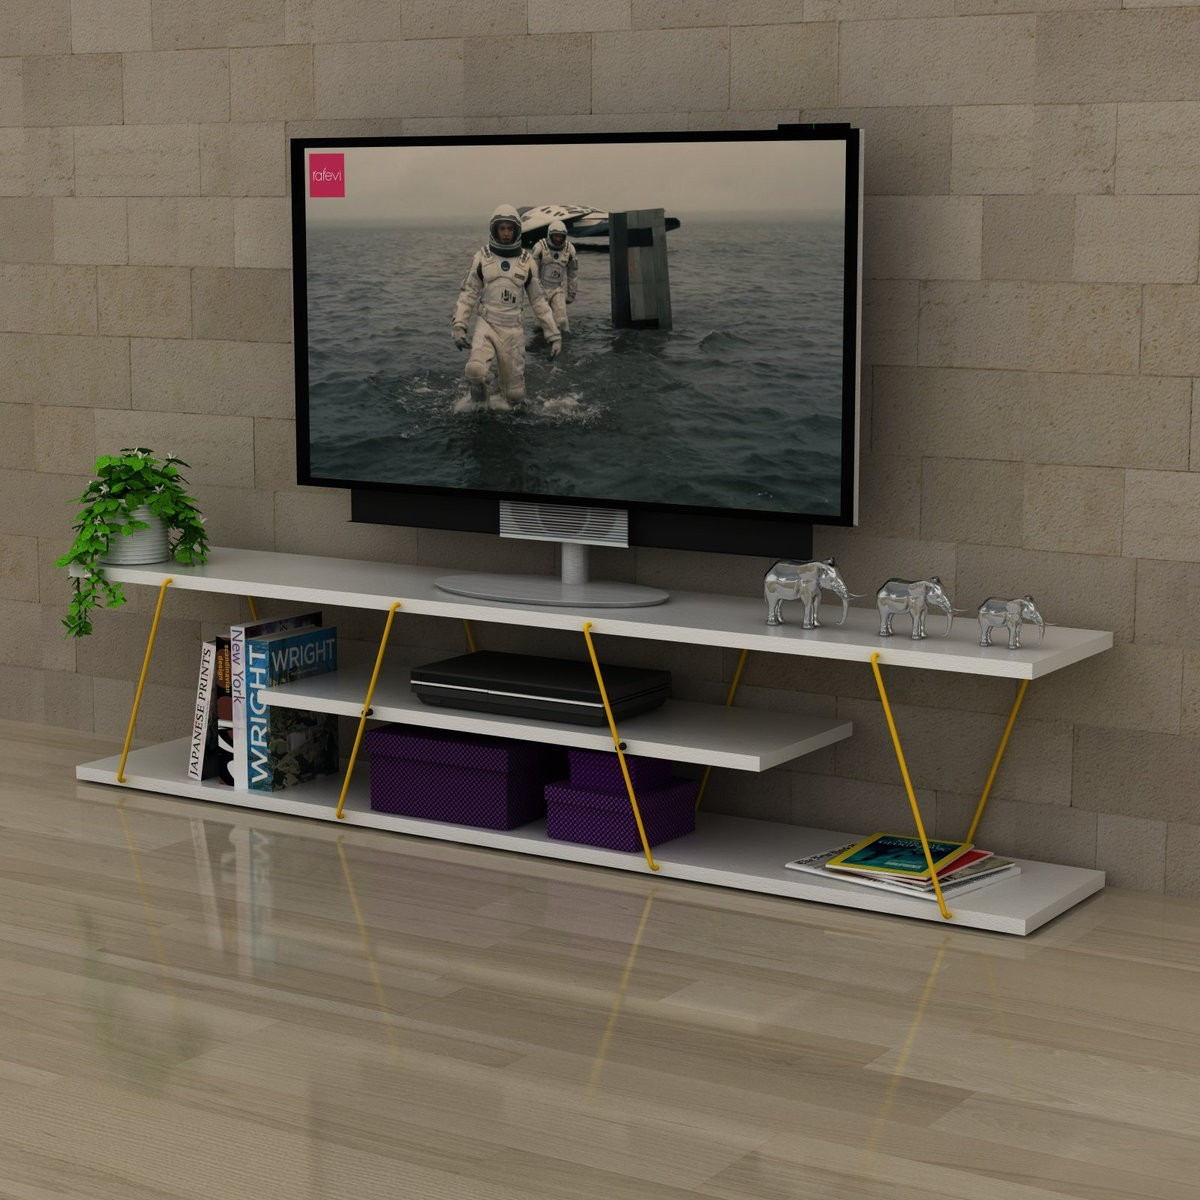 Mobiletto per televisione design moderno 140 cm unity for Mobiletto design